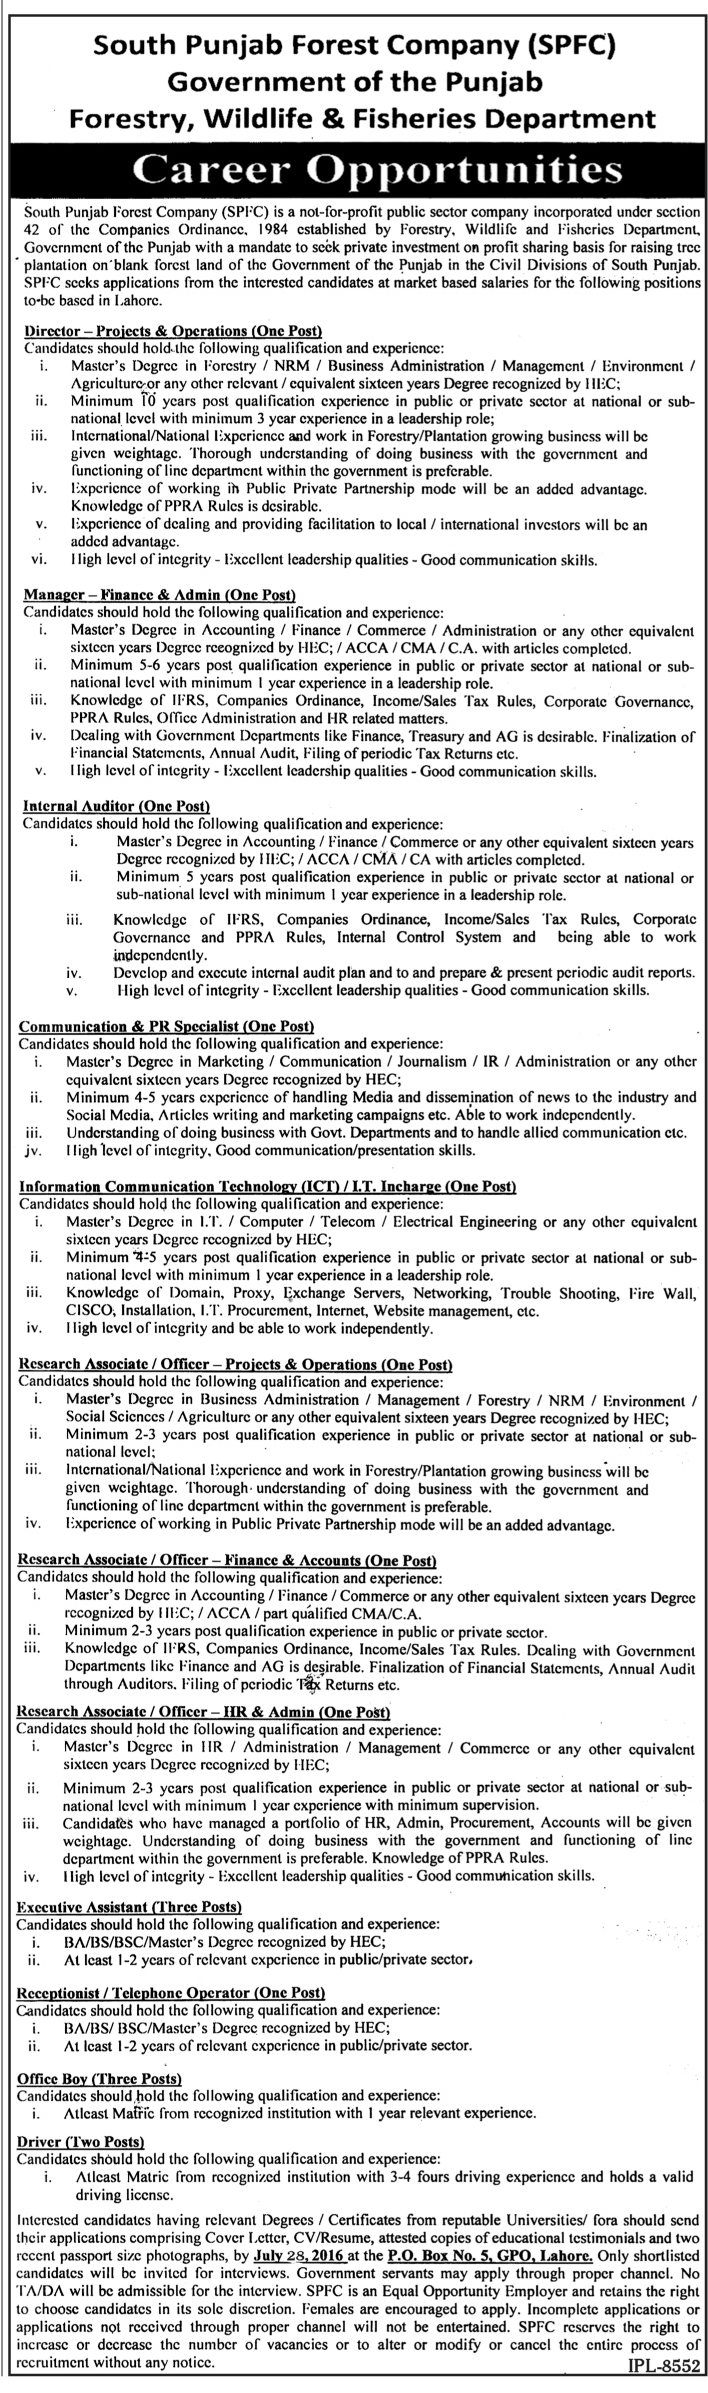 Foresty Wildlife and Fisheries Department Governemnt of Punjab Jobs